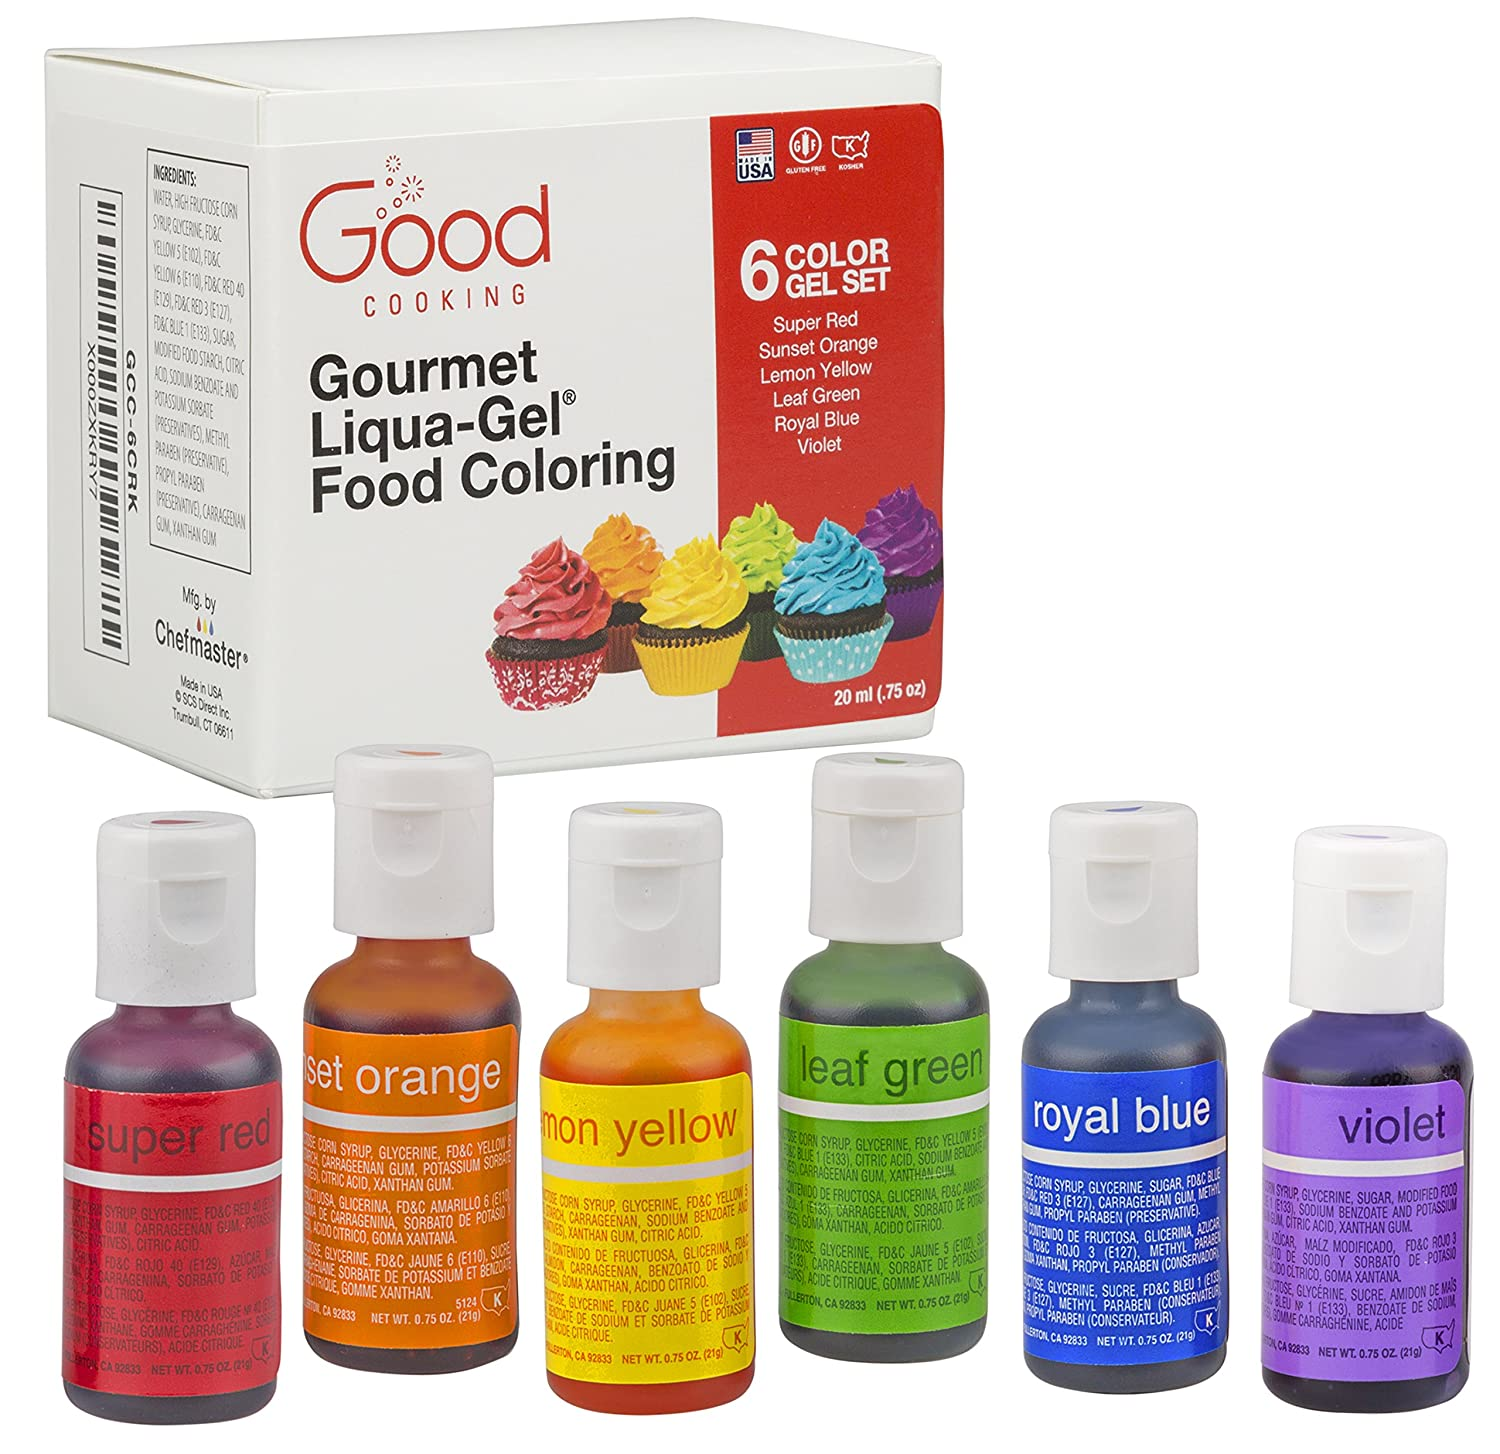 Food Coloring Liqua-Gel - 6 Color Rainbow Kit in .75 fl. oz. (20ml)